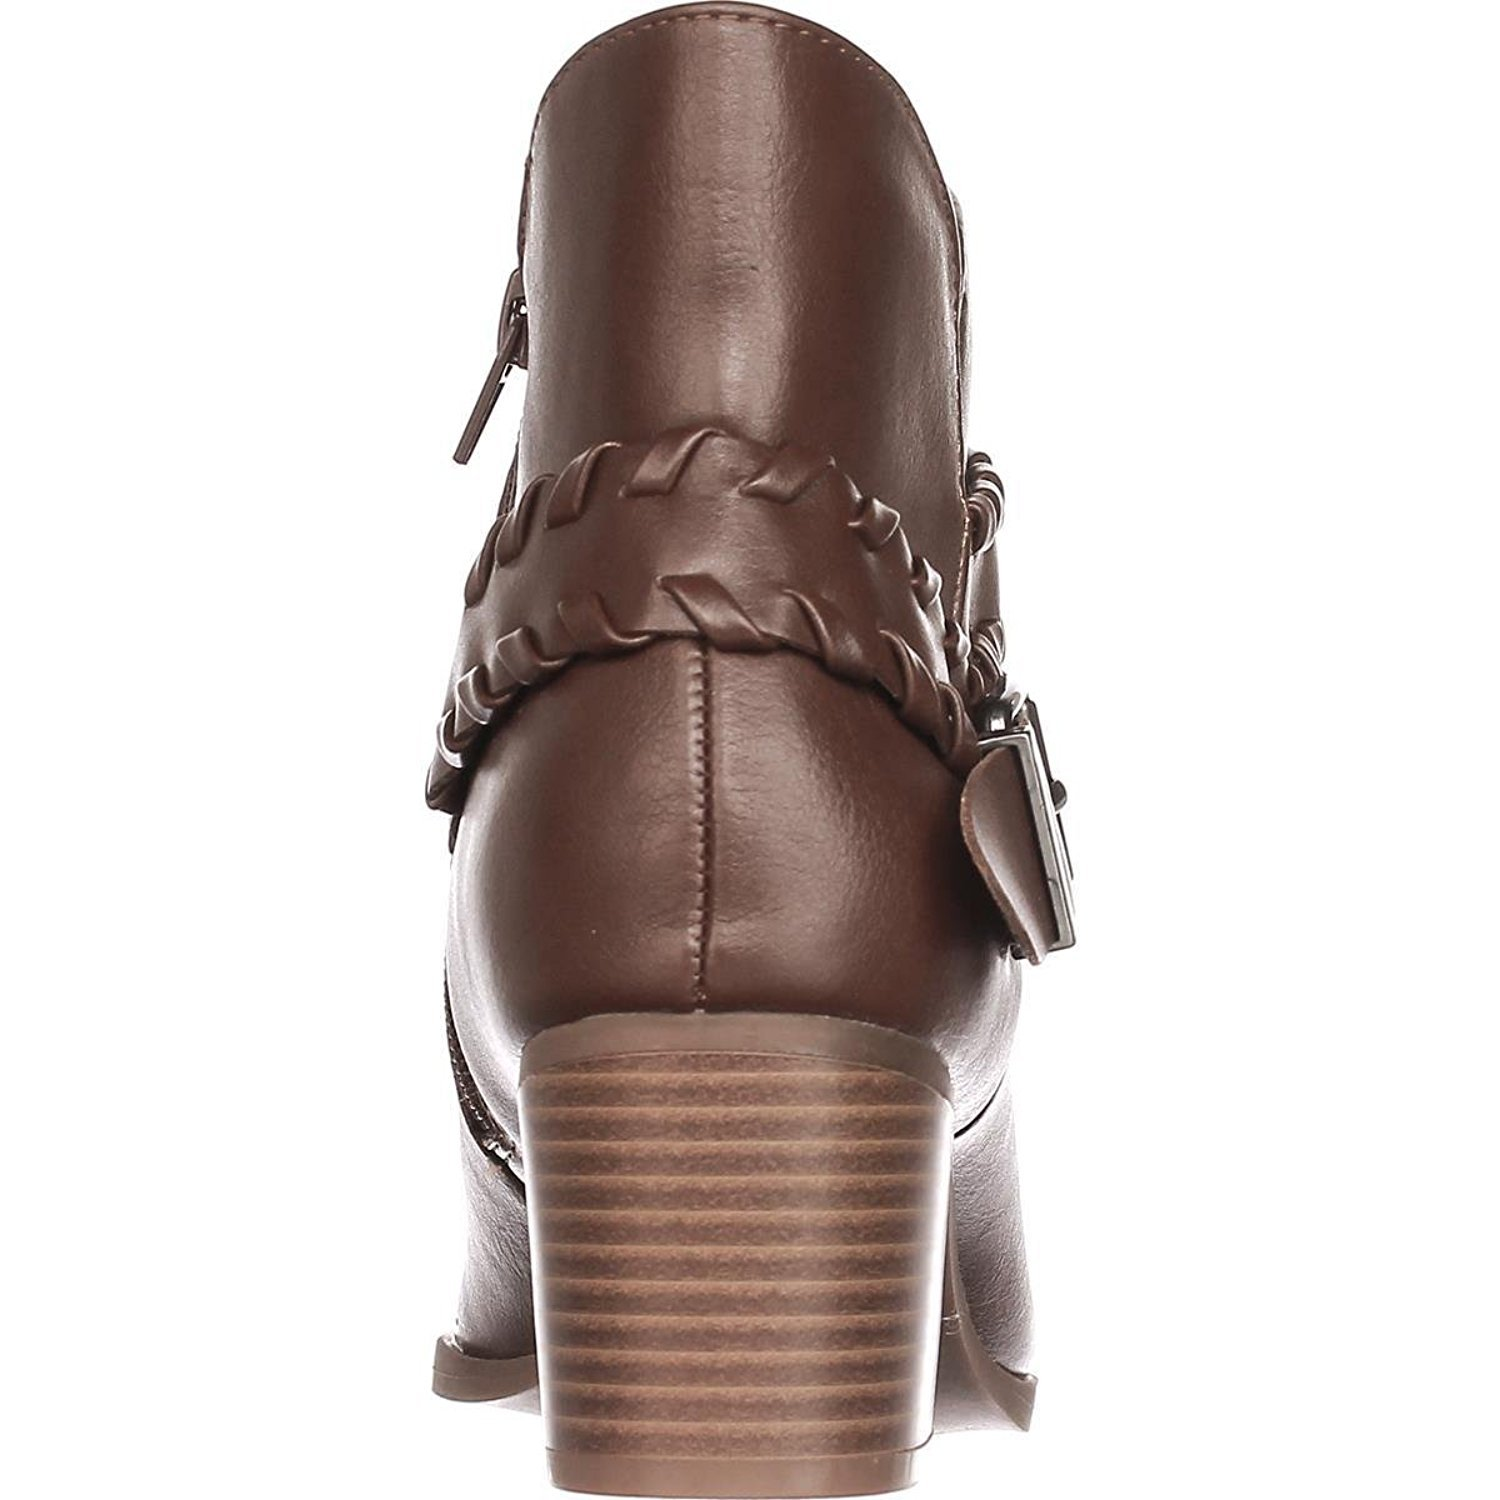 Style & Co. Womens Dyanaa Closed Toe Ankle Fashion Boots, Barrel, Size 7.0 by Style & Co. (Image #5)